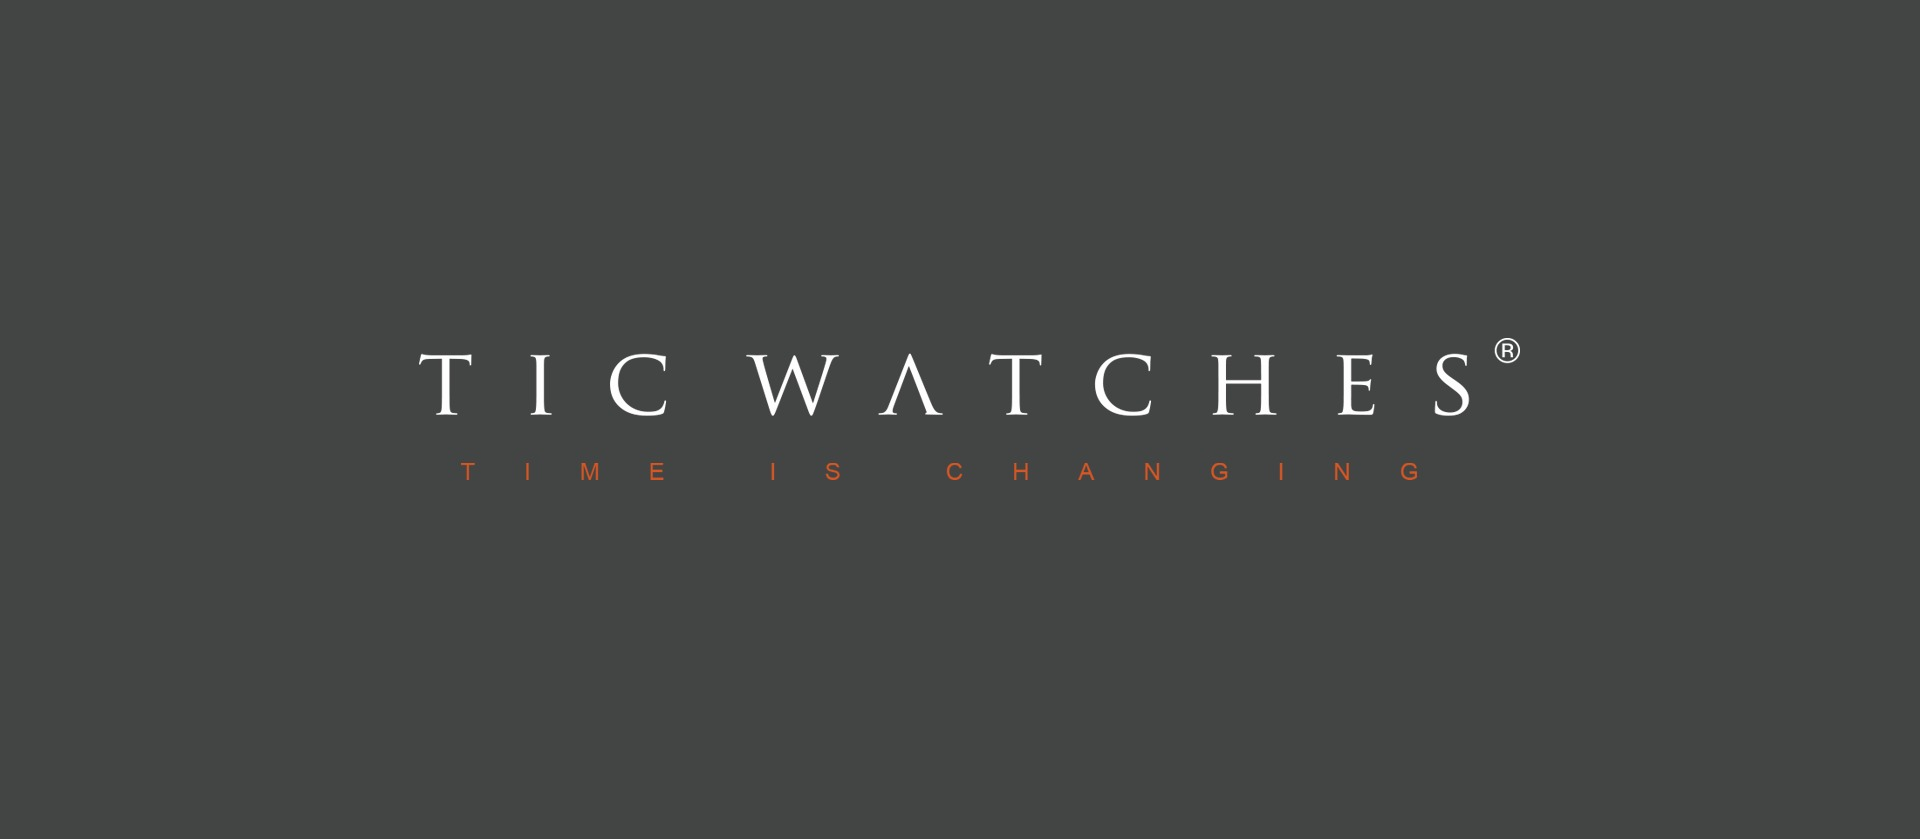 Daniel Richmond @ Tic Watches